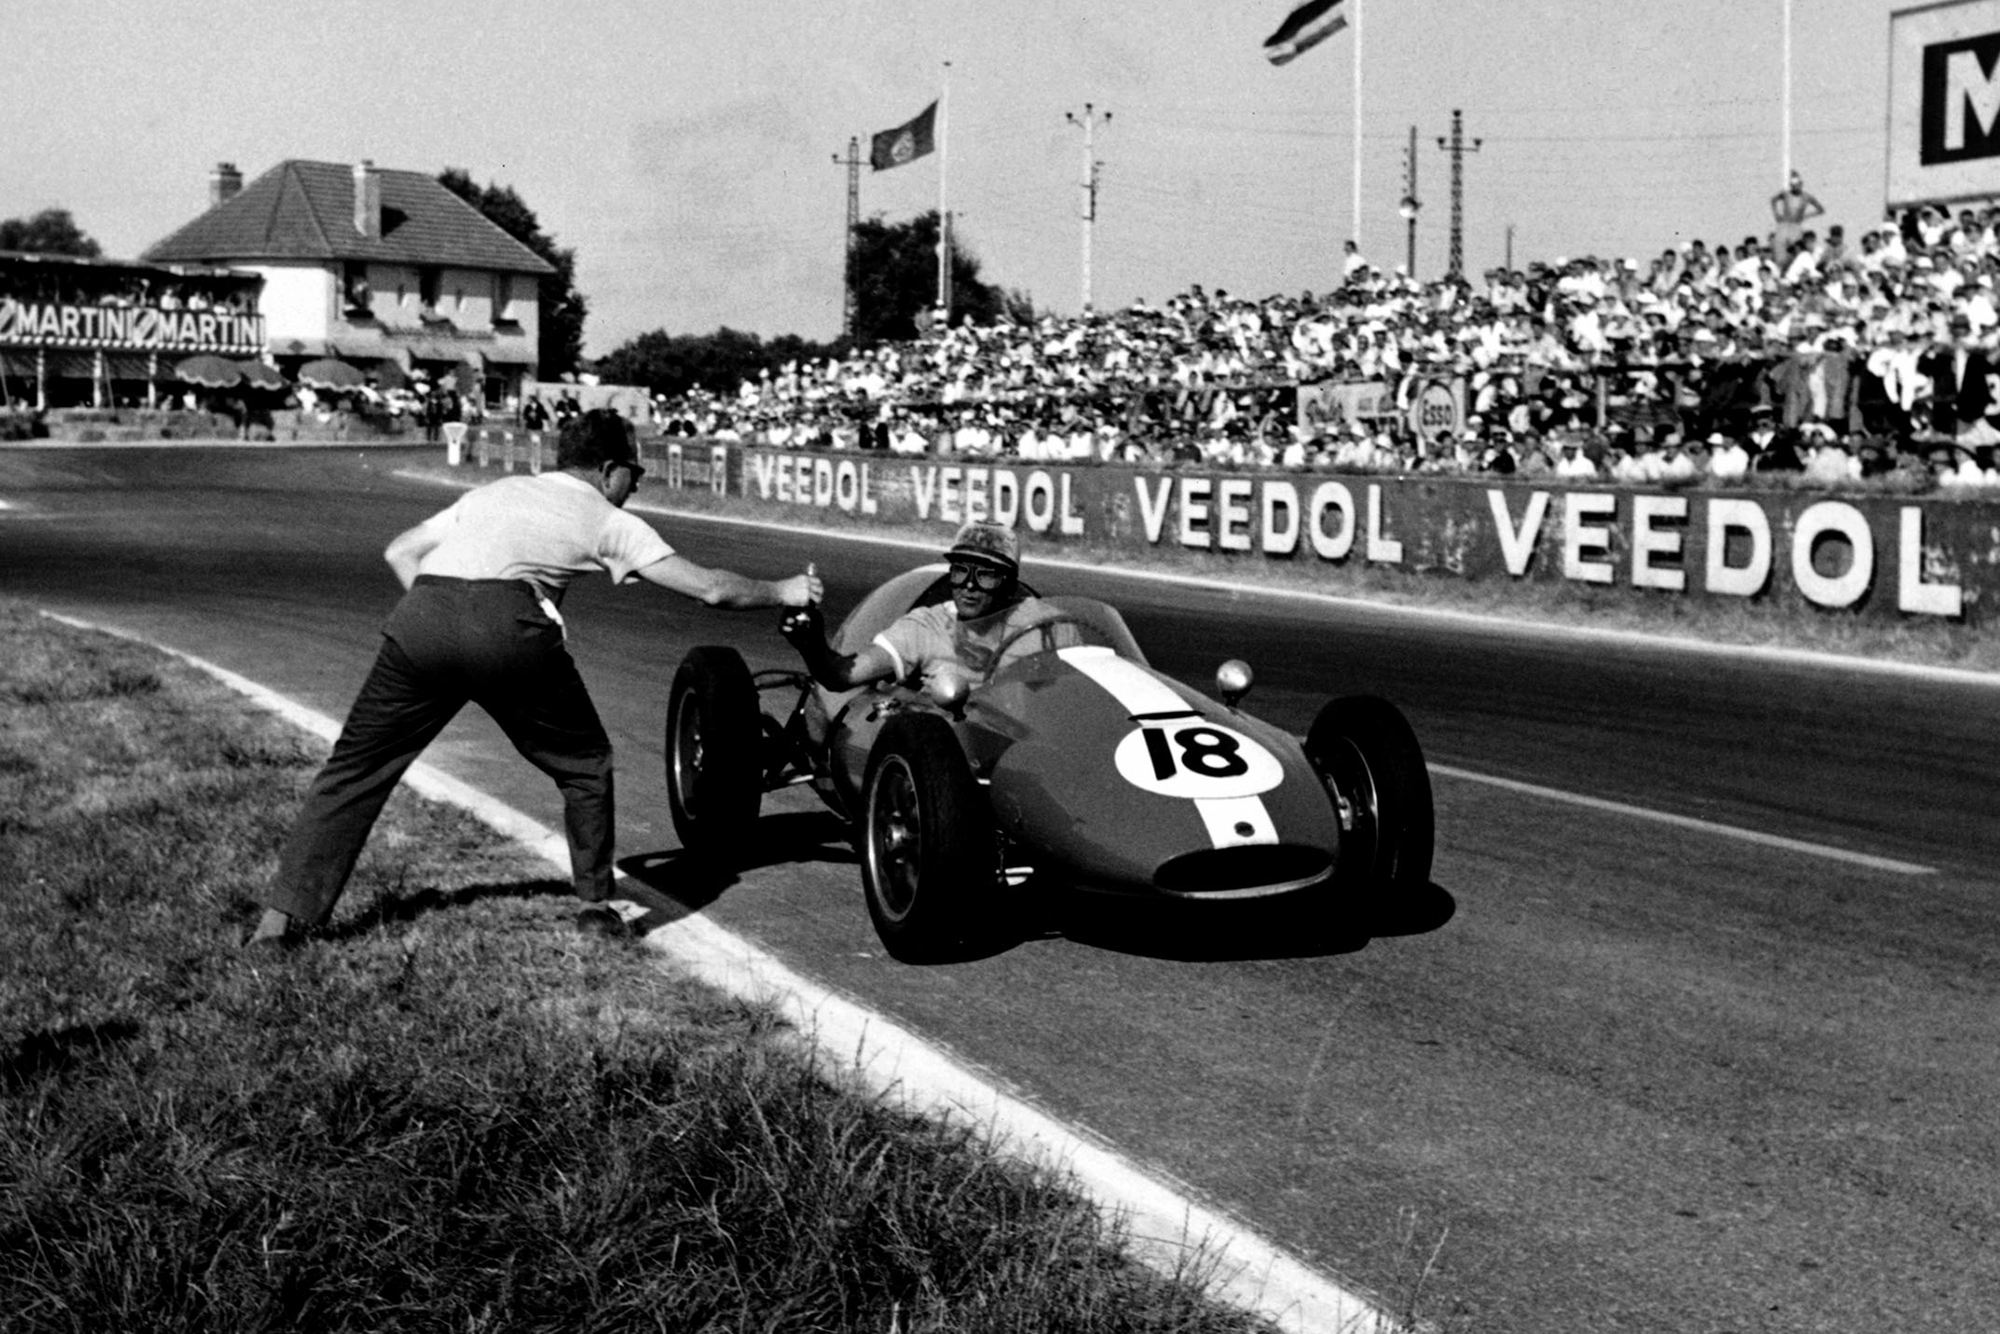 Ian Burgess stops for a drink during an incredibly hot race.